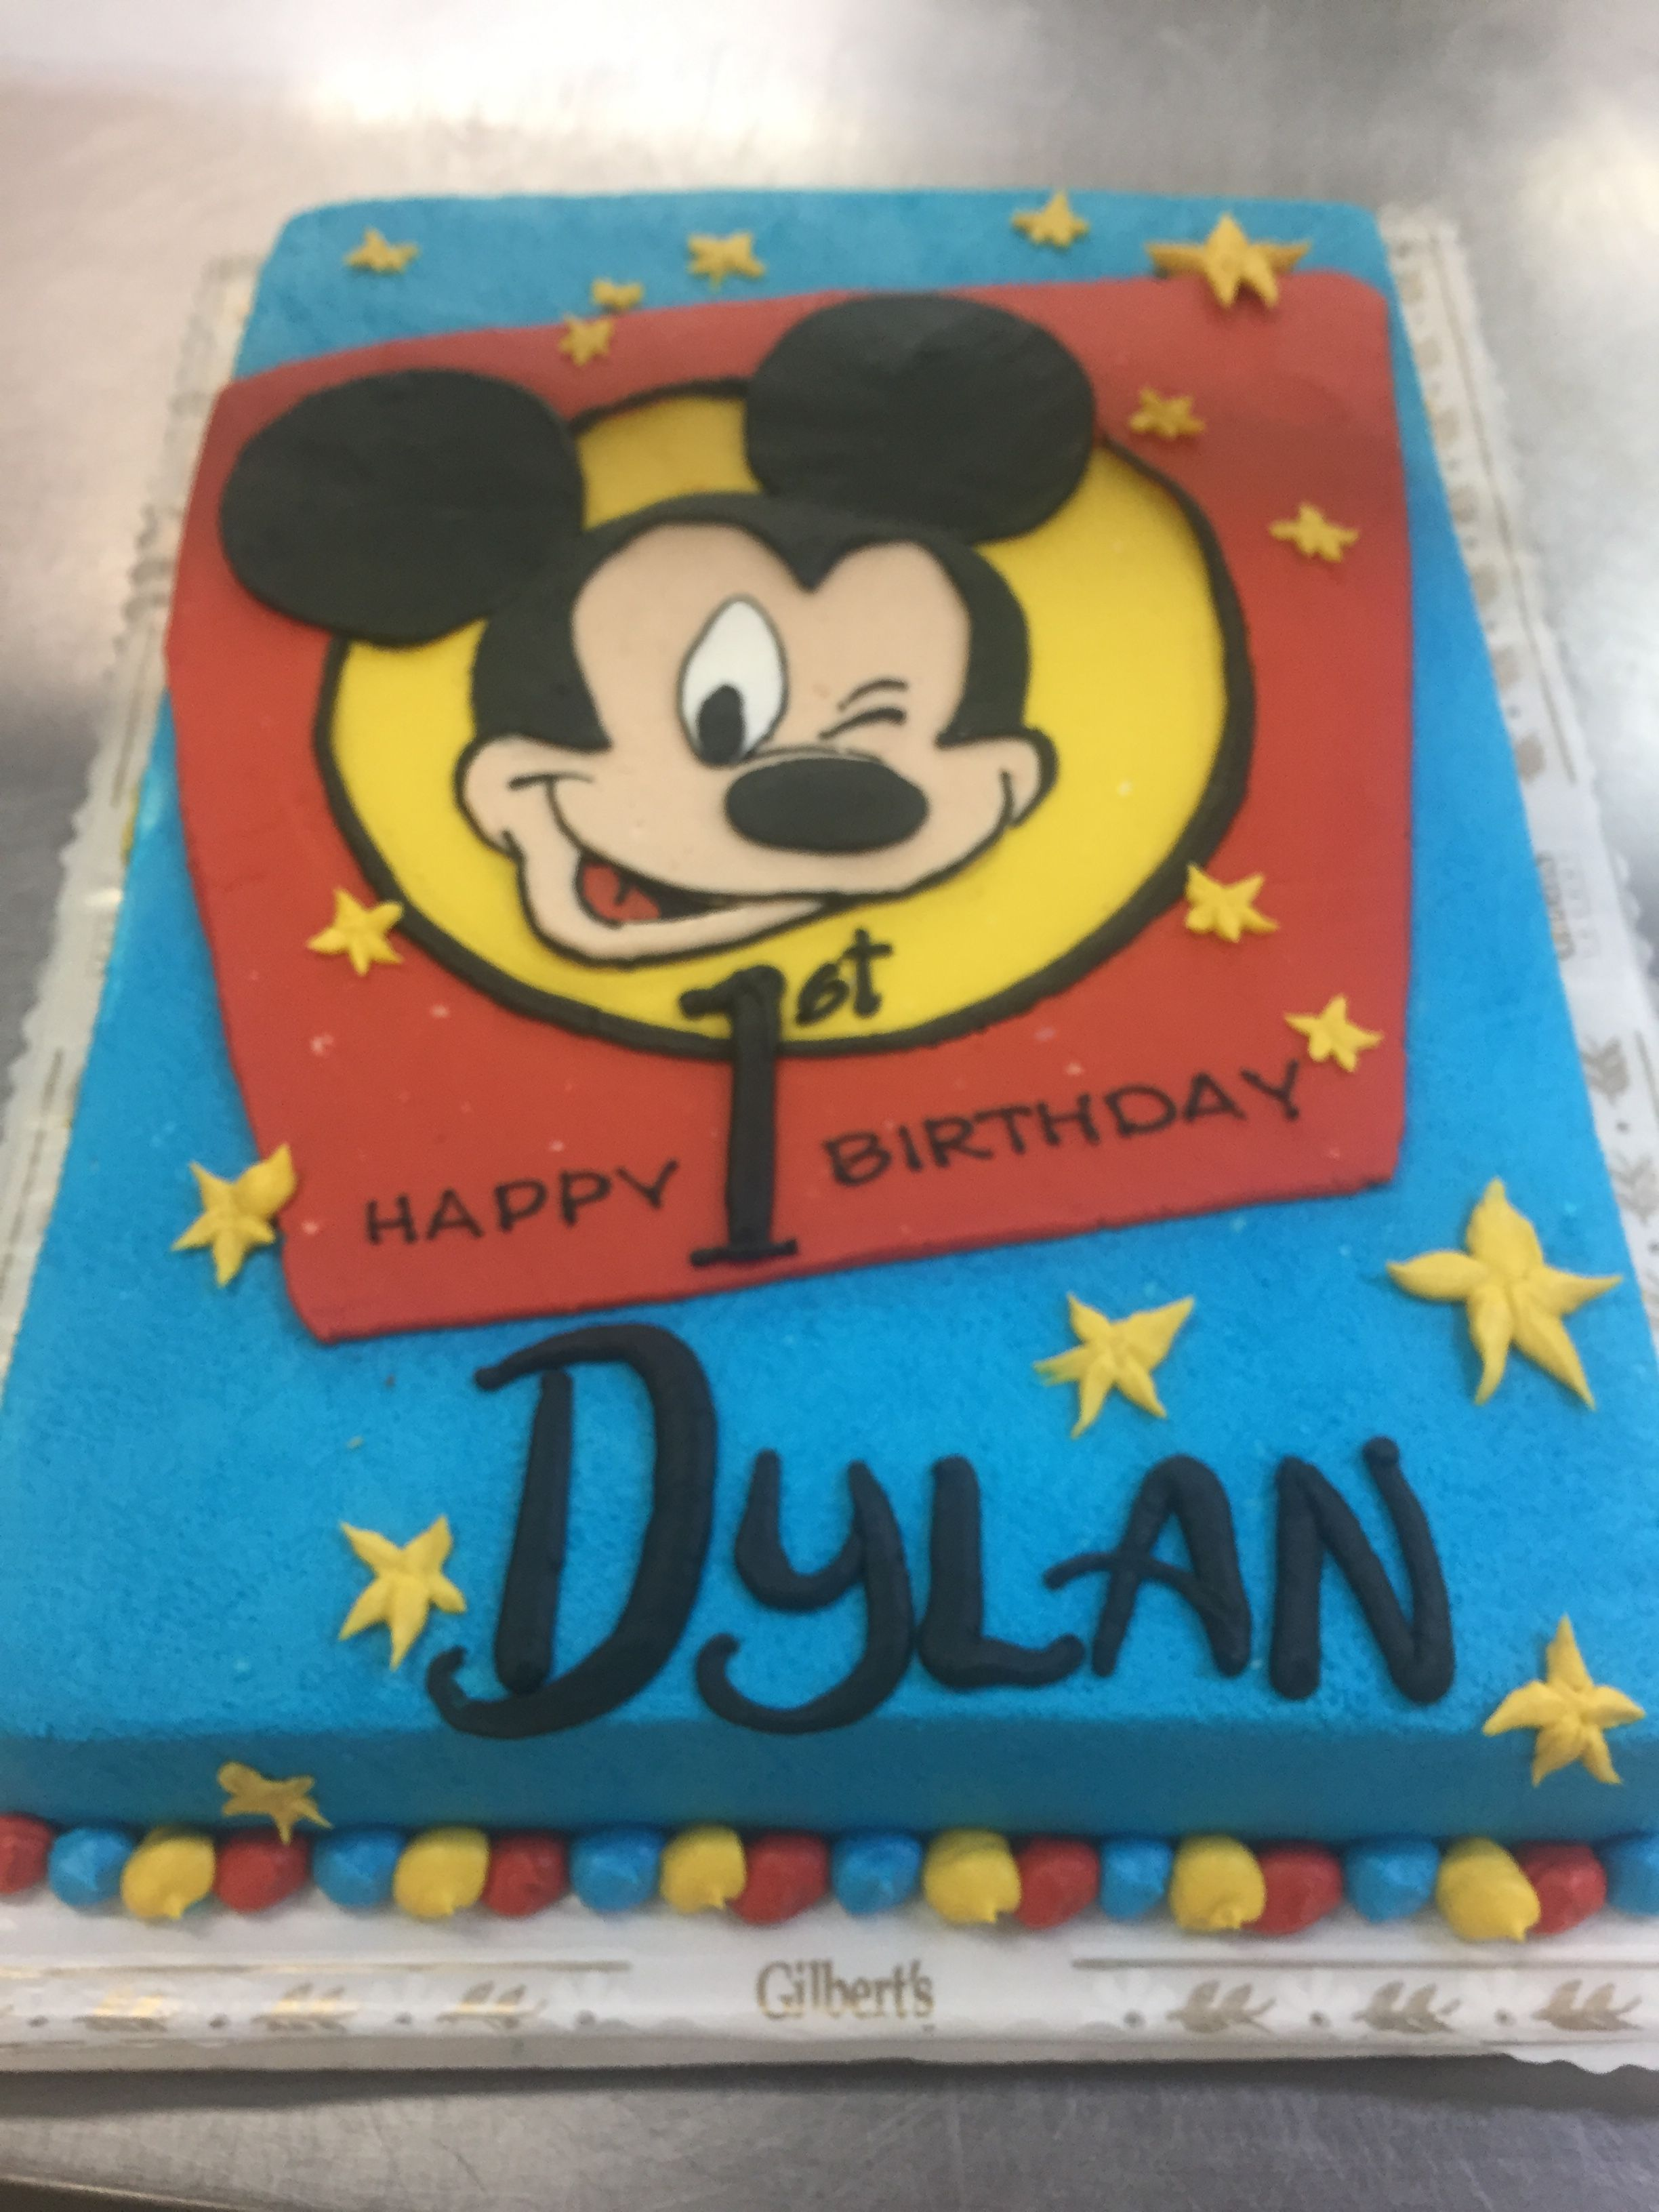 Blue Red And Yellow Cake With Mickeys Winking Face Drawn On Top